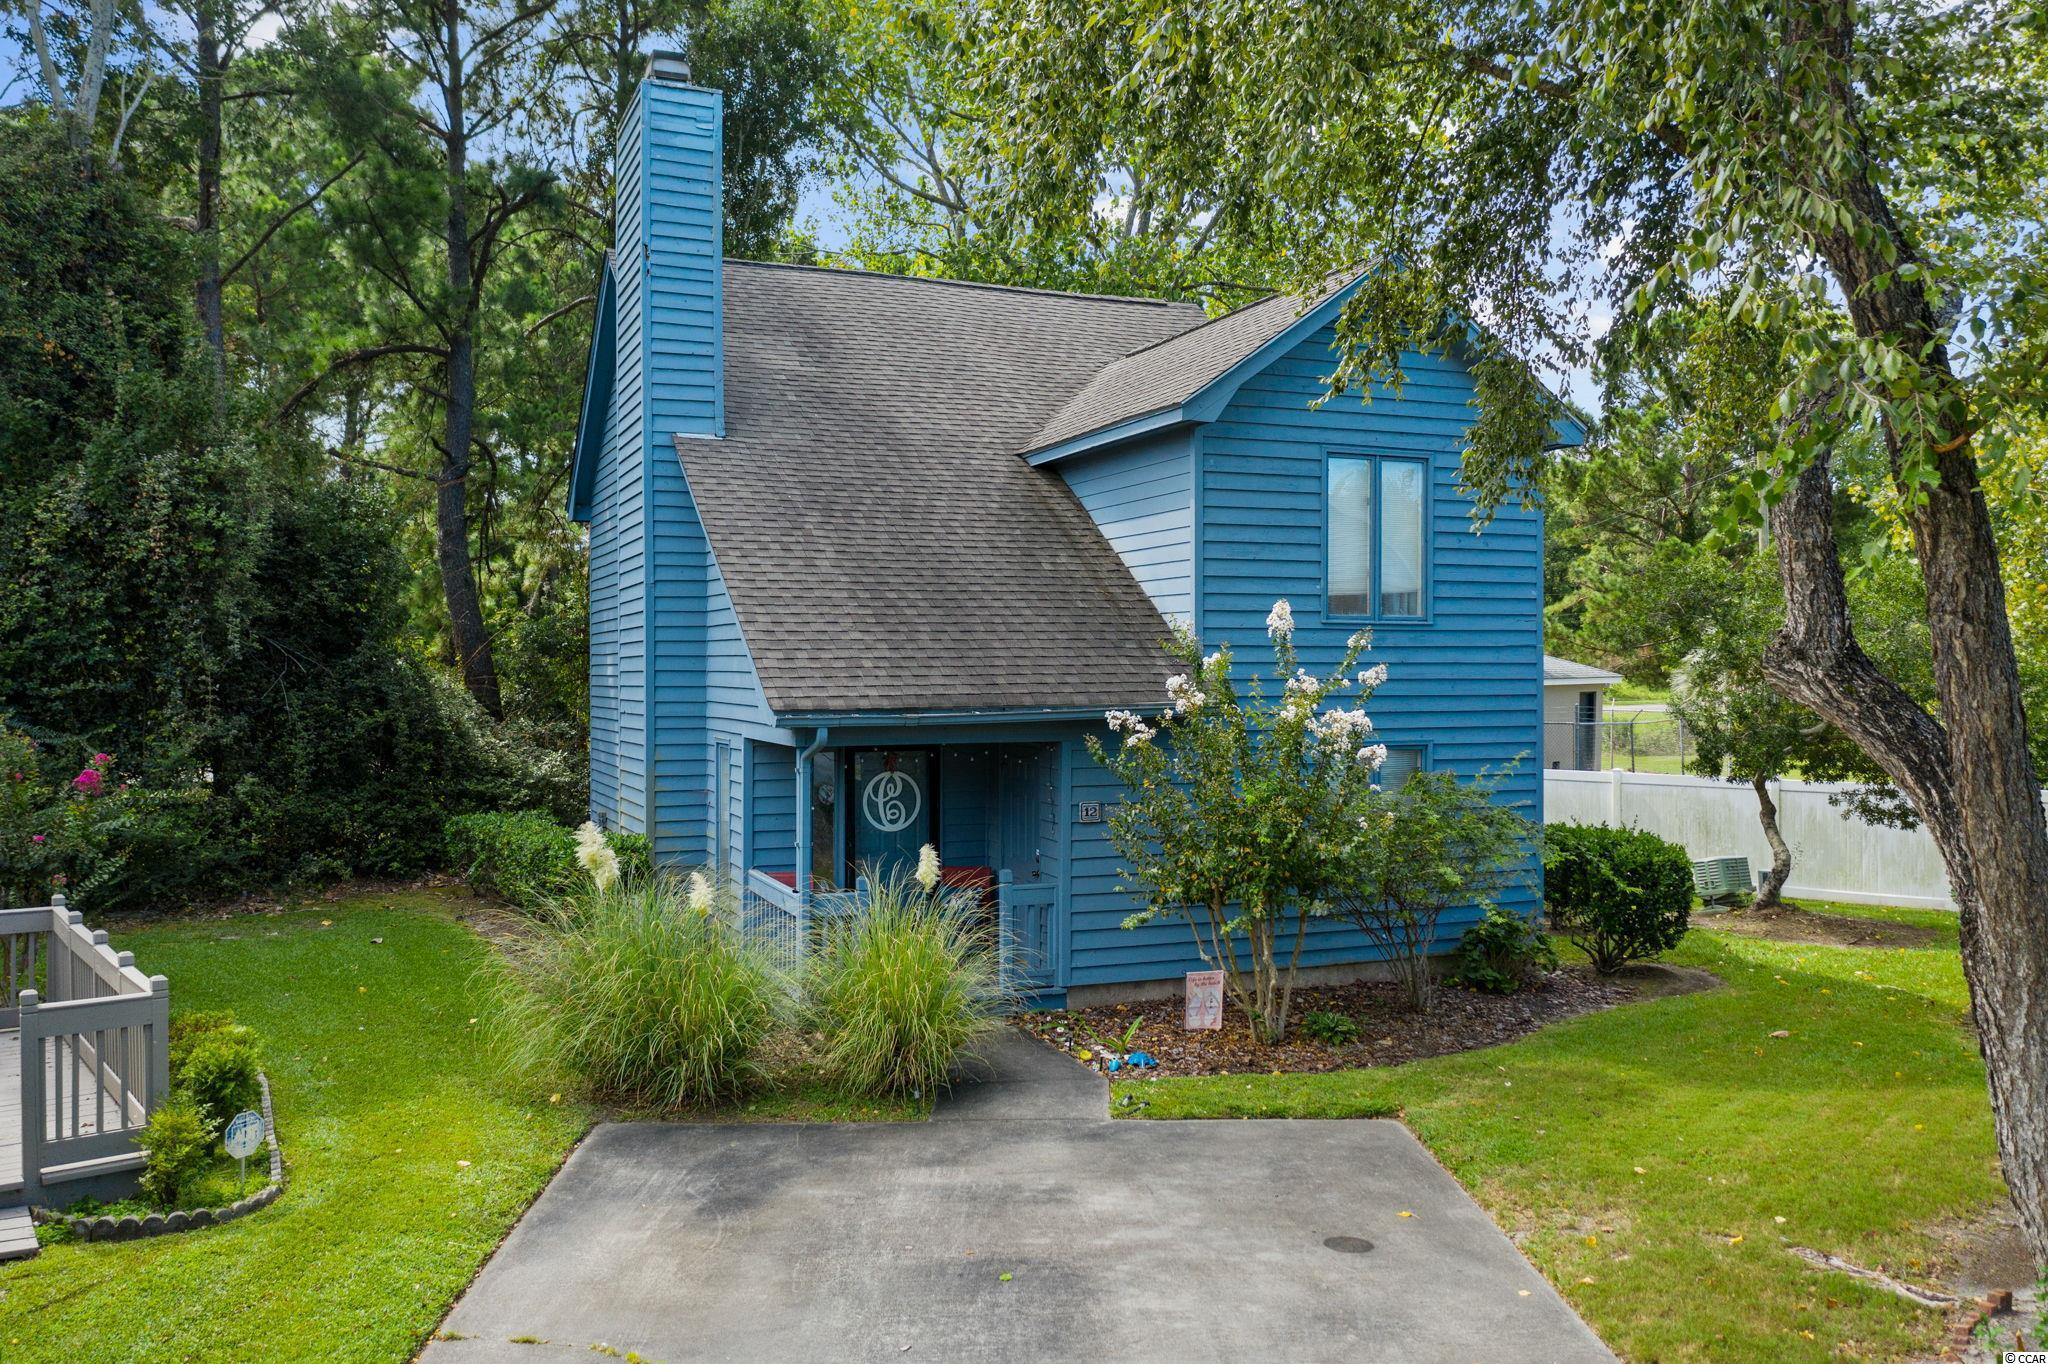 An Absolute Beauty! This gorgeous 3 Bedroom 2 Bathroom property in the heart of Myrtle Beach can be yours for an excellent price. Located in the quiet and charming Foxcroft community, this home is nestled in one of the best locations in the subdivision. Walk into an open living space and feel instantly at home. Vaulted ceilings downstairs, LVP Flooring throughout the living areas and carpet within the oversized bedrooms, this home is the definition of comfortable. A kitchen with a breakfast bar, great sized dining area, fireplace, and an oversized patio make entertaining space possible. The primary bedroom and bathroom finish off the first floor. Oversized primary closet and double vanities in the bathroom as well as washer dryer downstairs! Upstairs you are greeted with two more bedrooms of excellent size, as well as an additional full bathroom for your family and guests to enjoy. This home was extremely well taken care of and it shows! Whether it is an investment property, a vacation getaway, or a primary residence, you MUST come check this home out! Located next to all the entertainment, shopping, and eateries you can handle, being in the middle of Myrtle Beach has it's perks! This home with a 2 Minute drive to the ocean can be yours today!